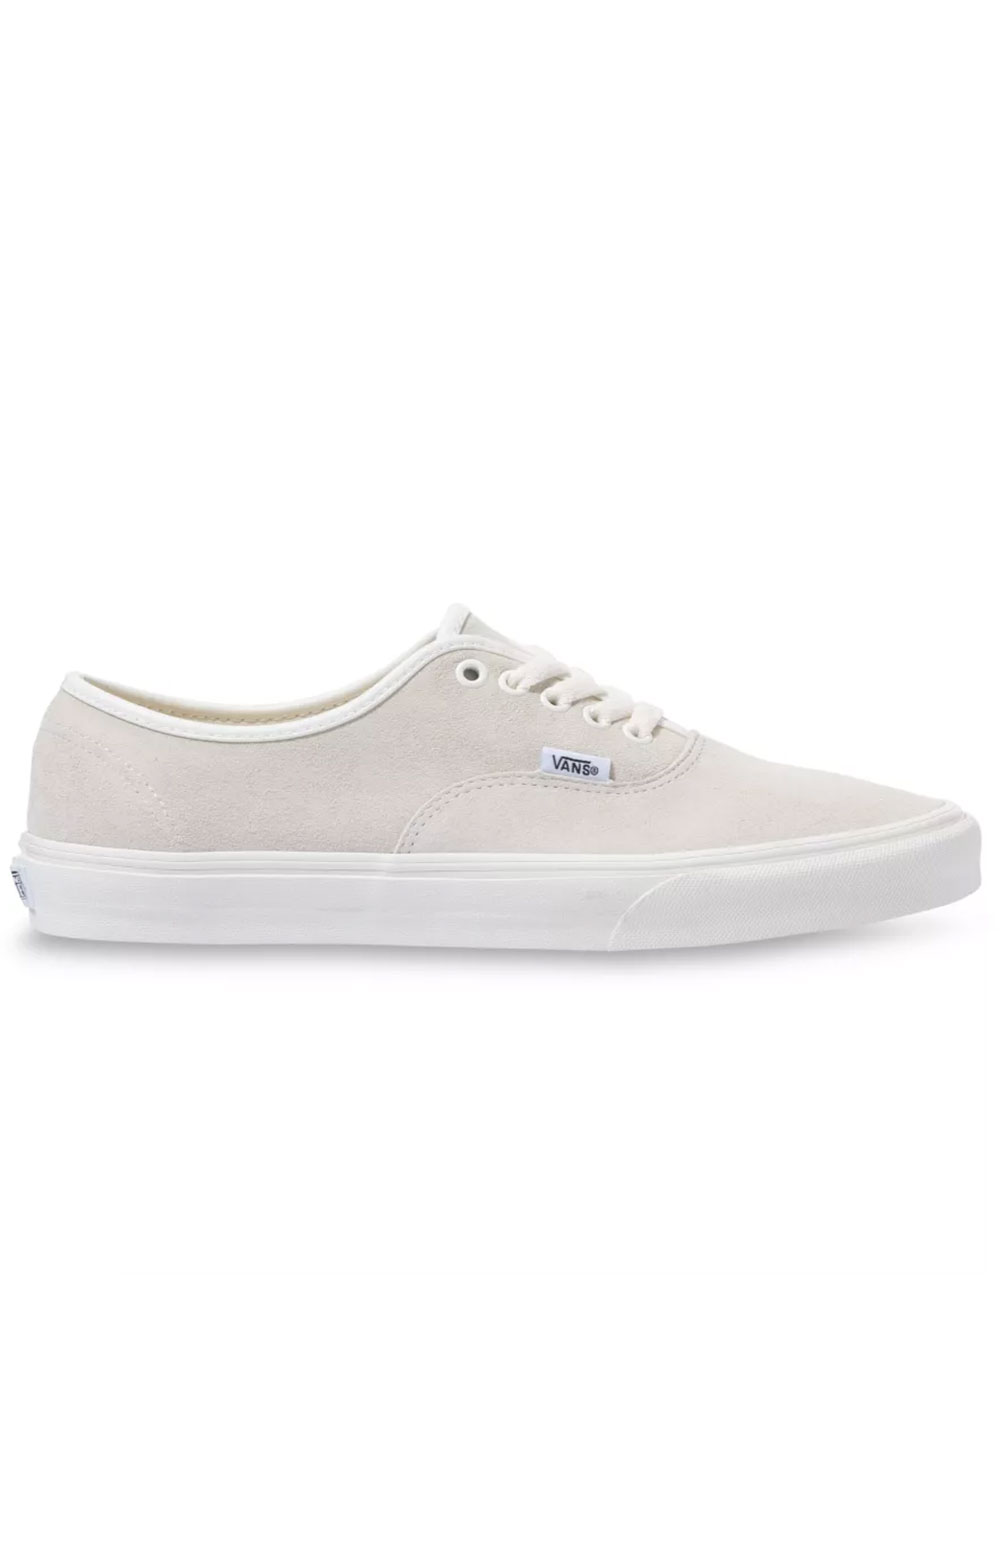 (48A19A) Pig Suede Authentic Shoe - Marshmallow